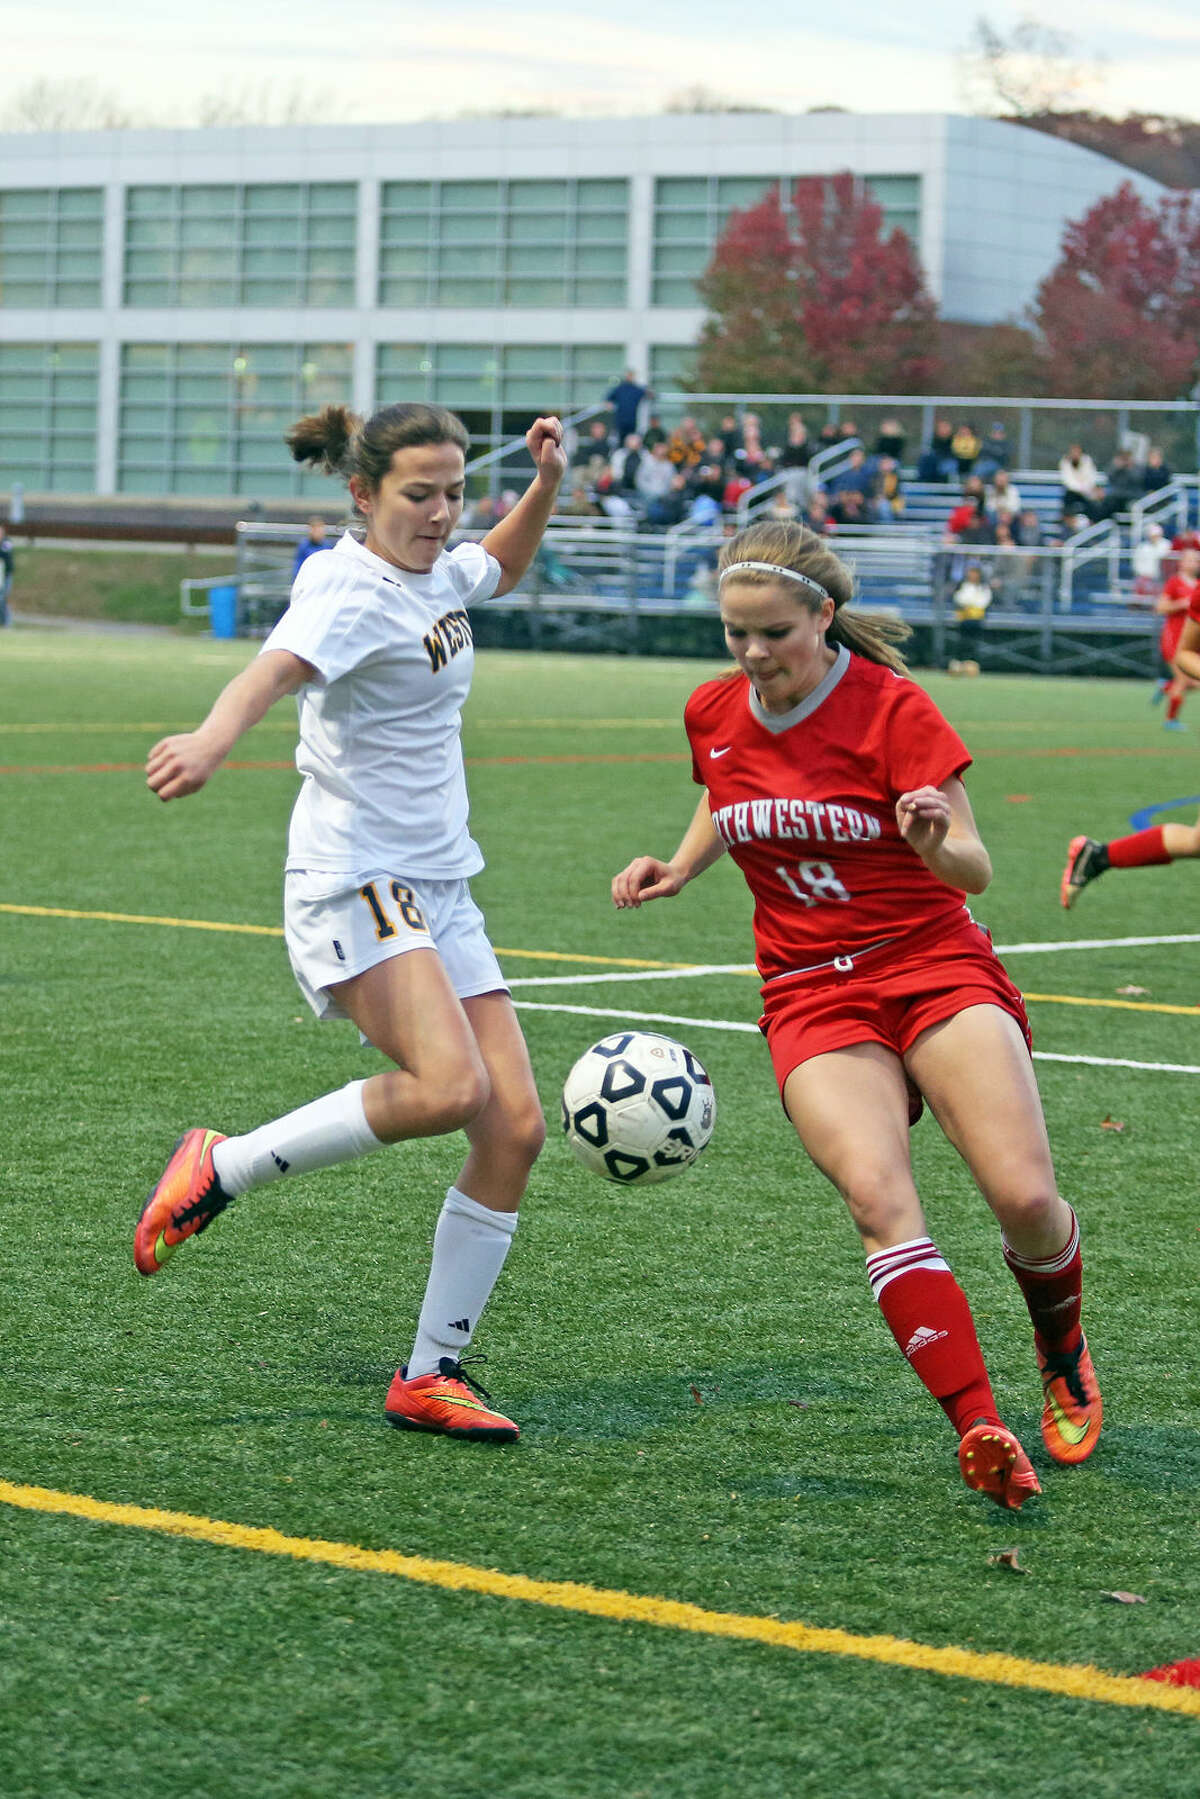 Weston's #18, Emily Iatesta, kicks the ball during the Class M state tournament game against Northwestern at the Weston High School girl's soccer field Monday afternoon. Hour Photo / Danielle Calloway